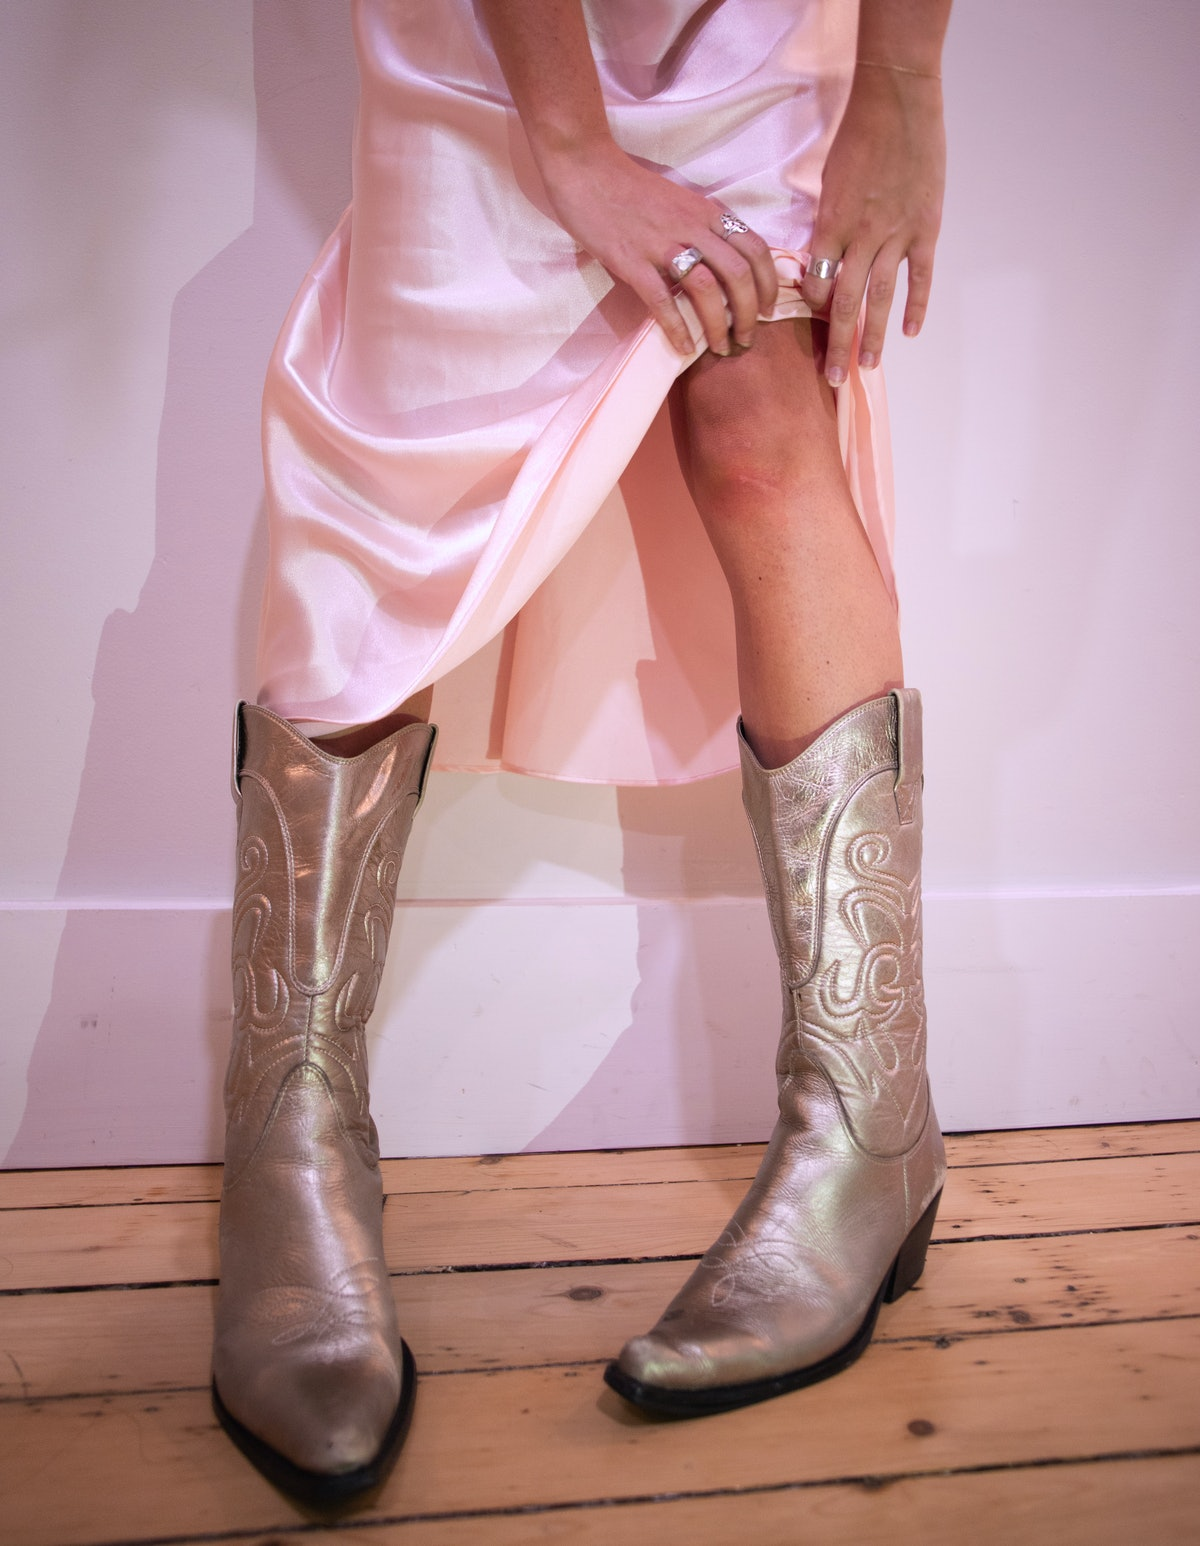 Emma Childs wearing a pink slip dress in silver cowboy boots.